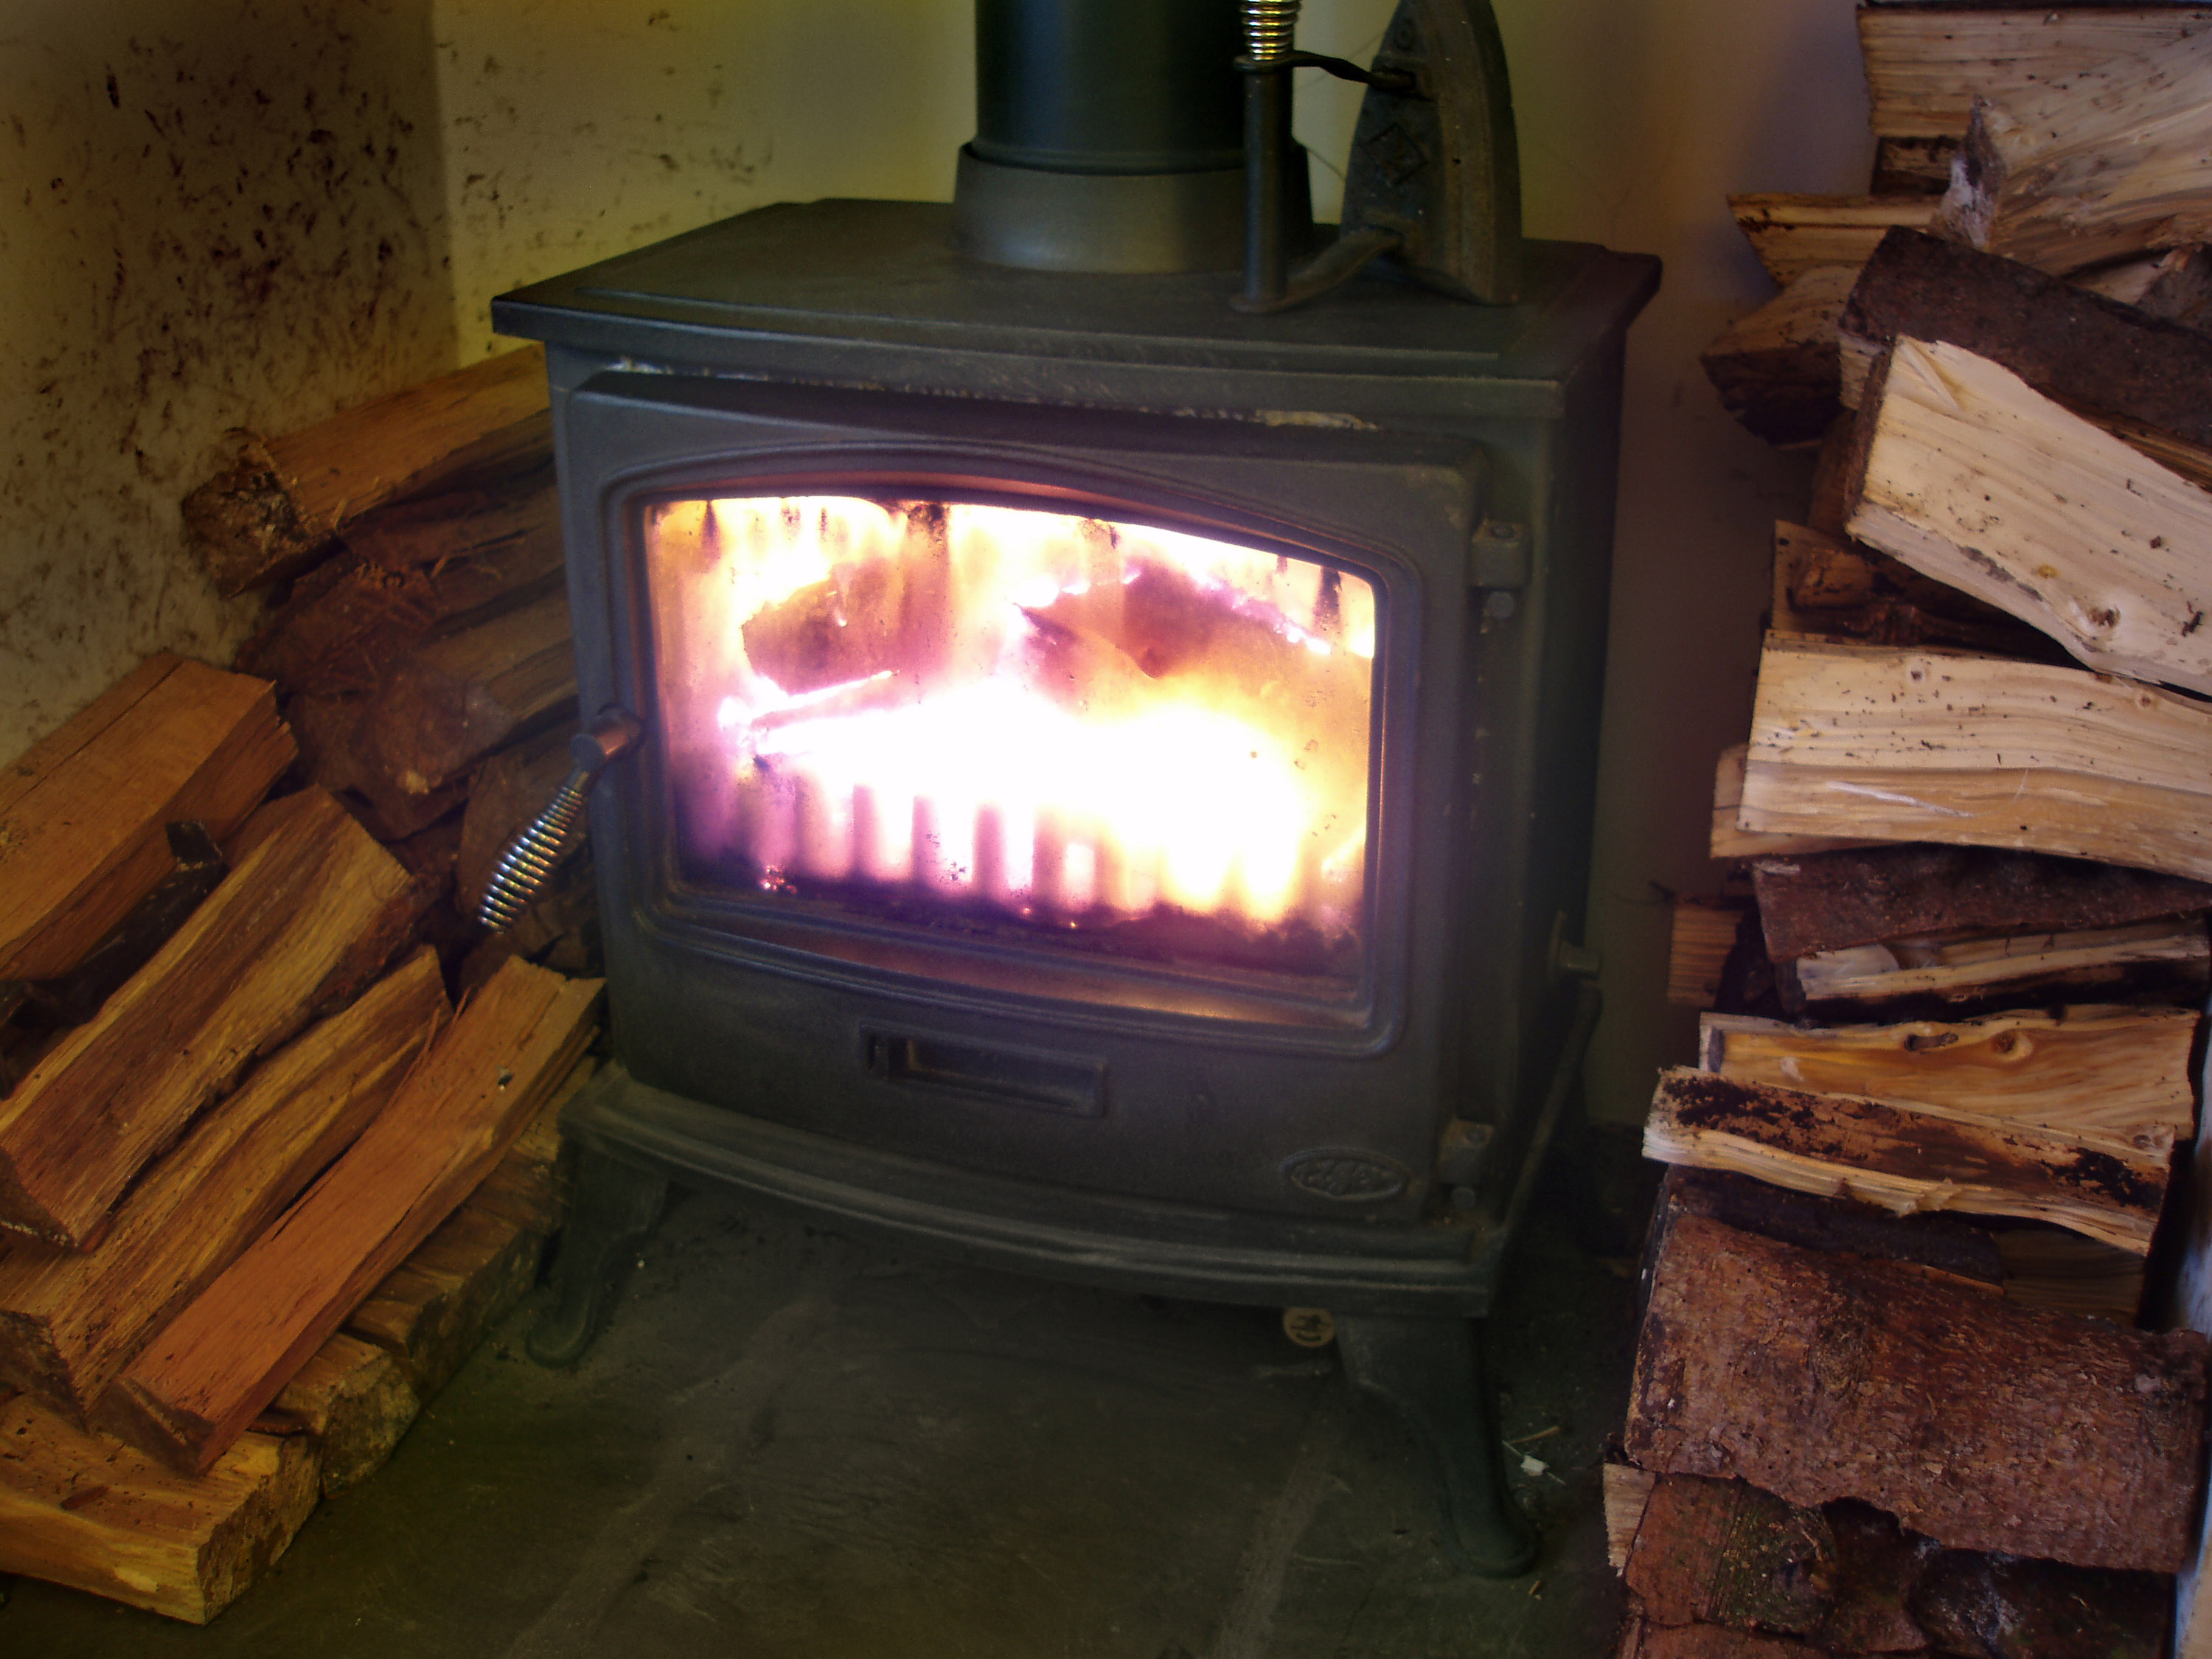 logs burning in a wood burning stove always reminds me of cosy christmas evening